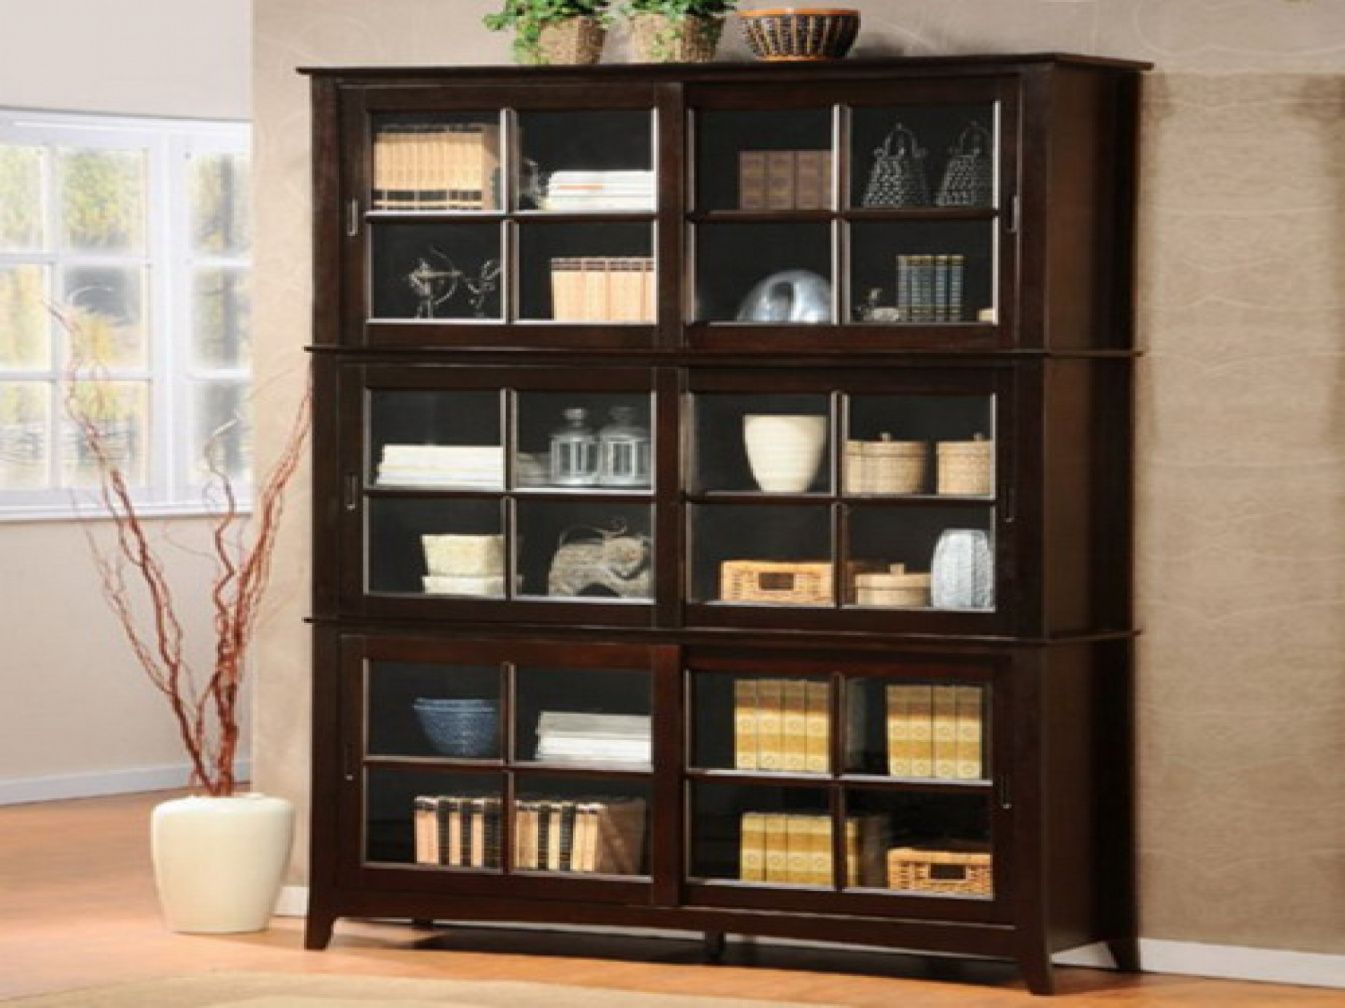 Wood Bookcases With Glass Doors   Furniture For Home Office Check More At  Http:/